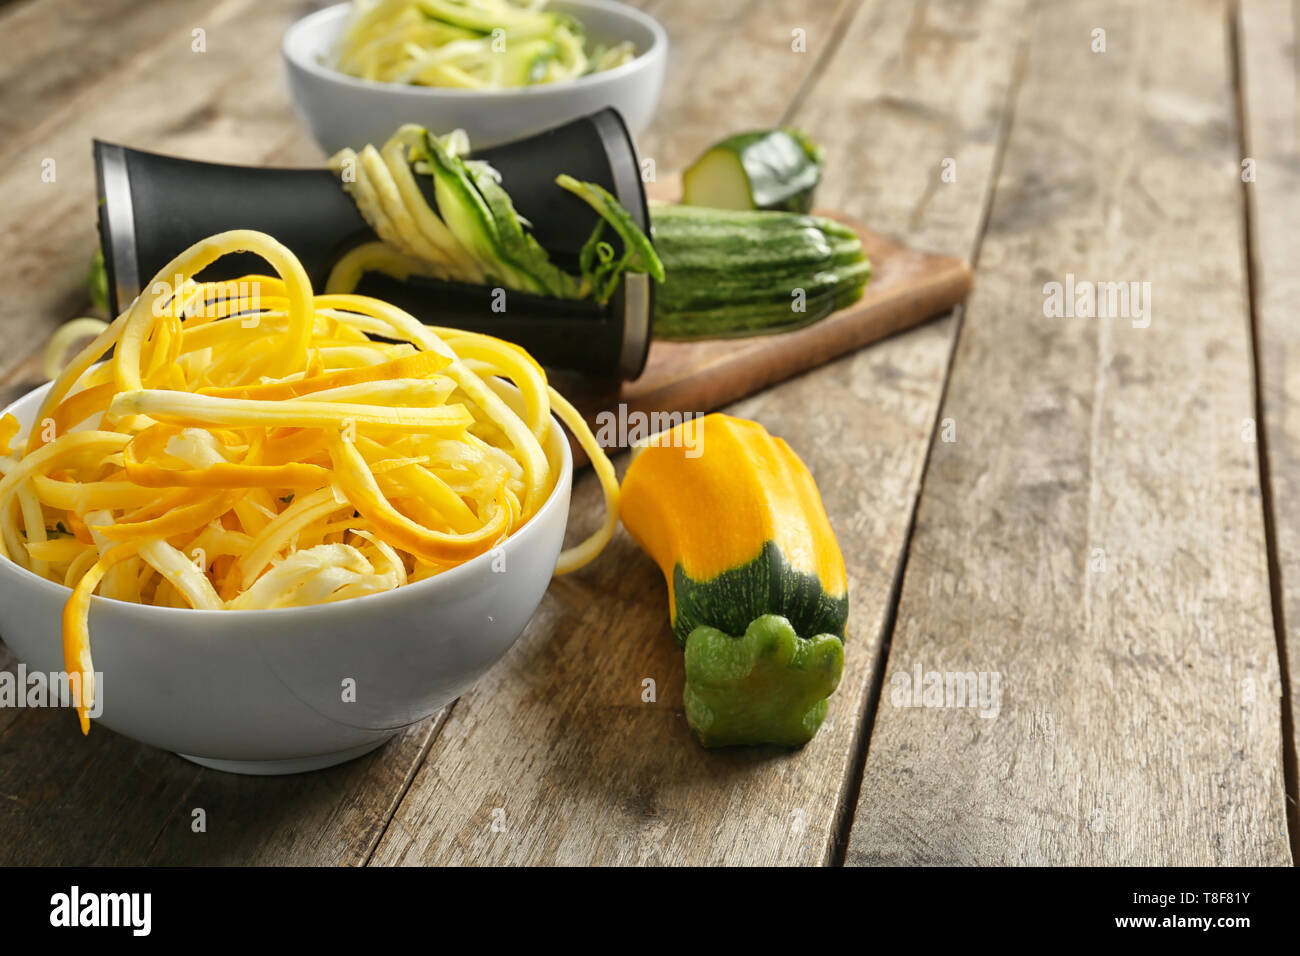 Fresh zucchini spaghetti with spiral grater on wooden table Stock Photo